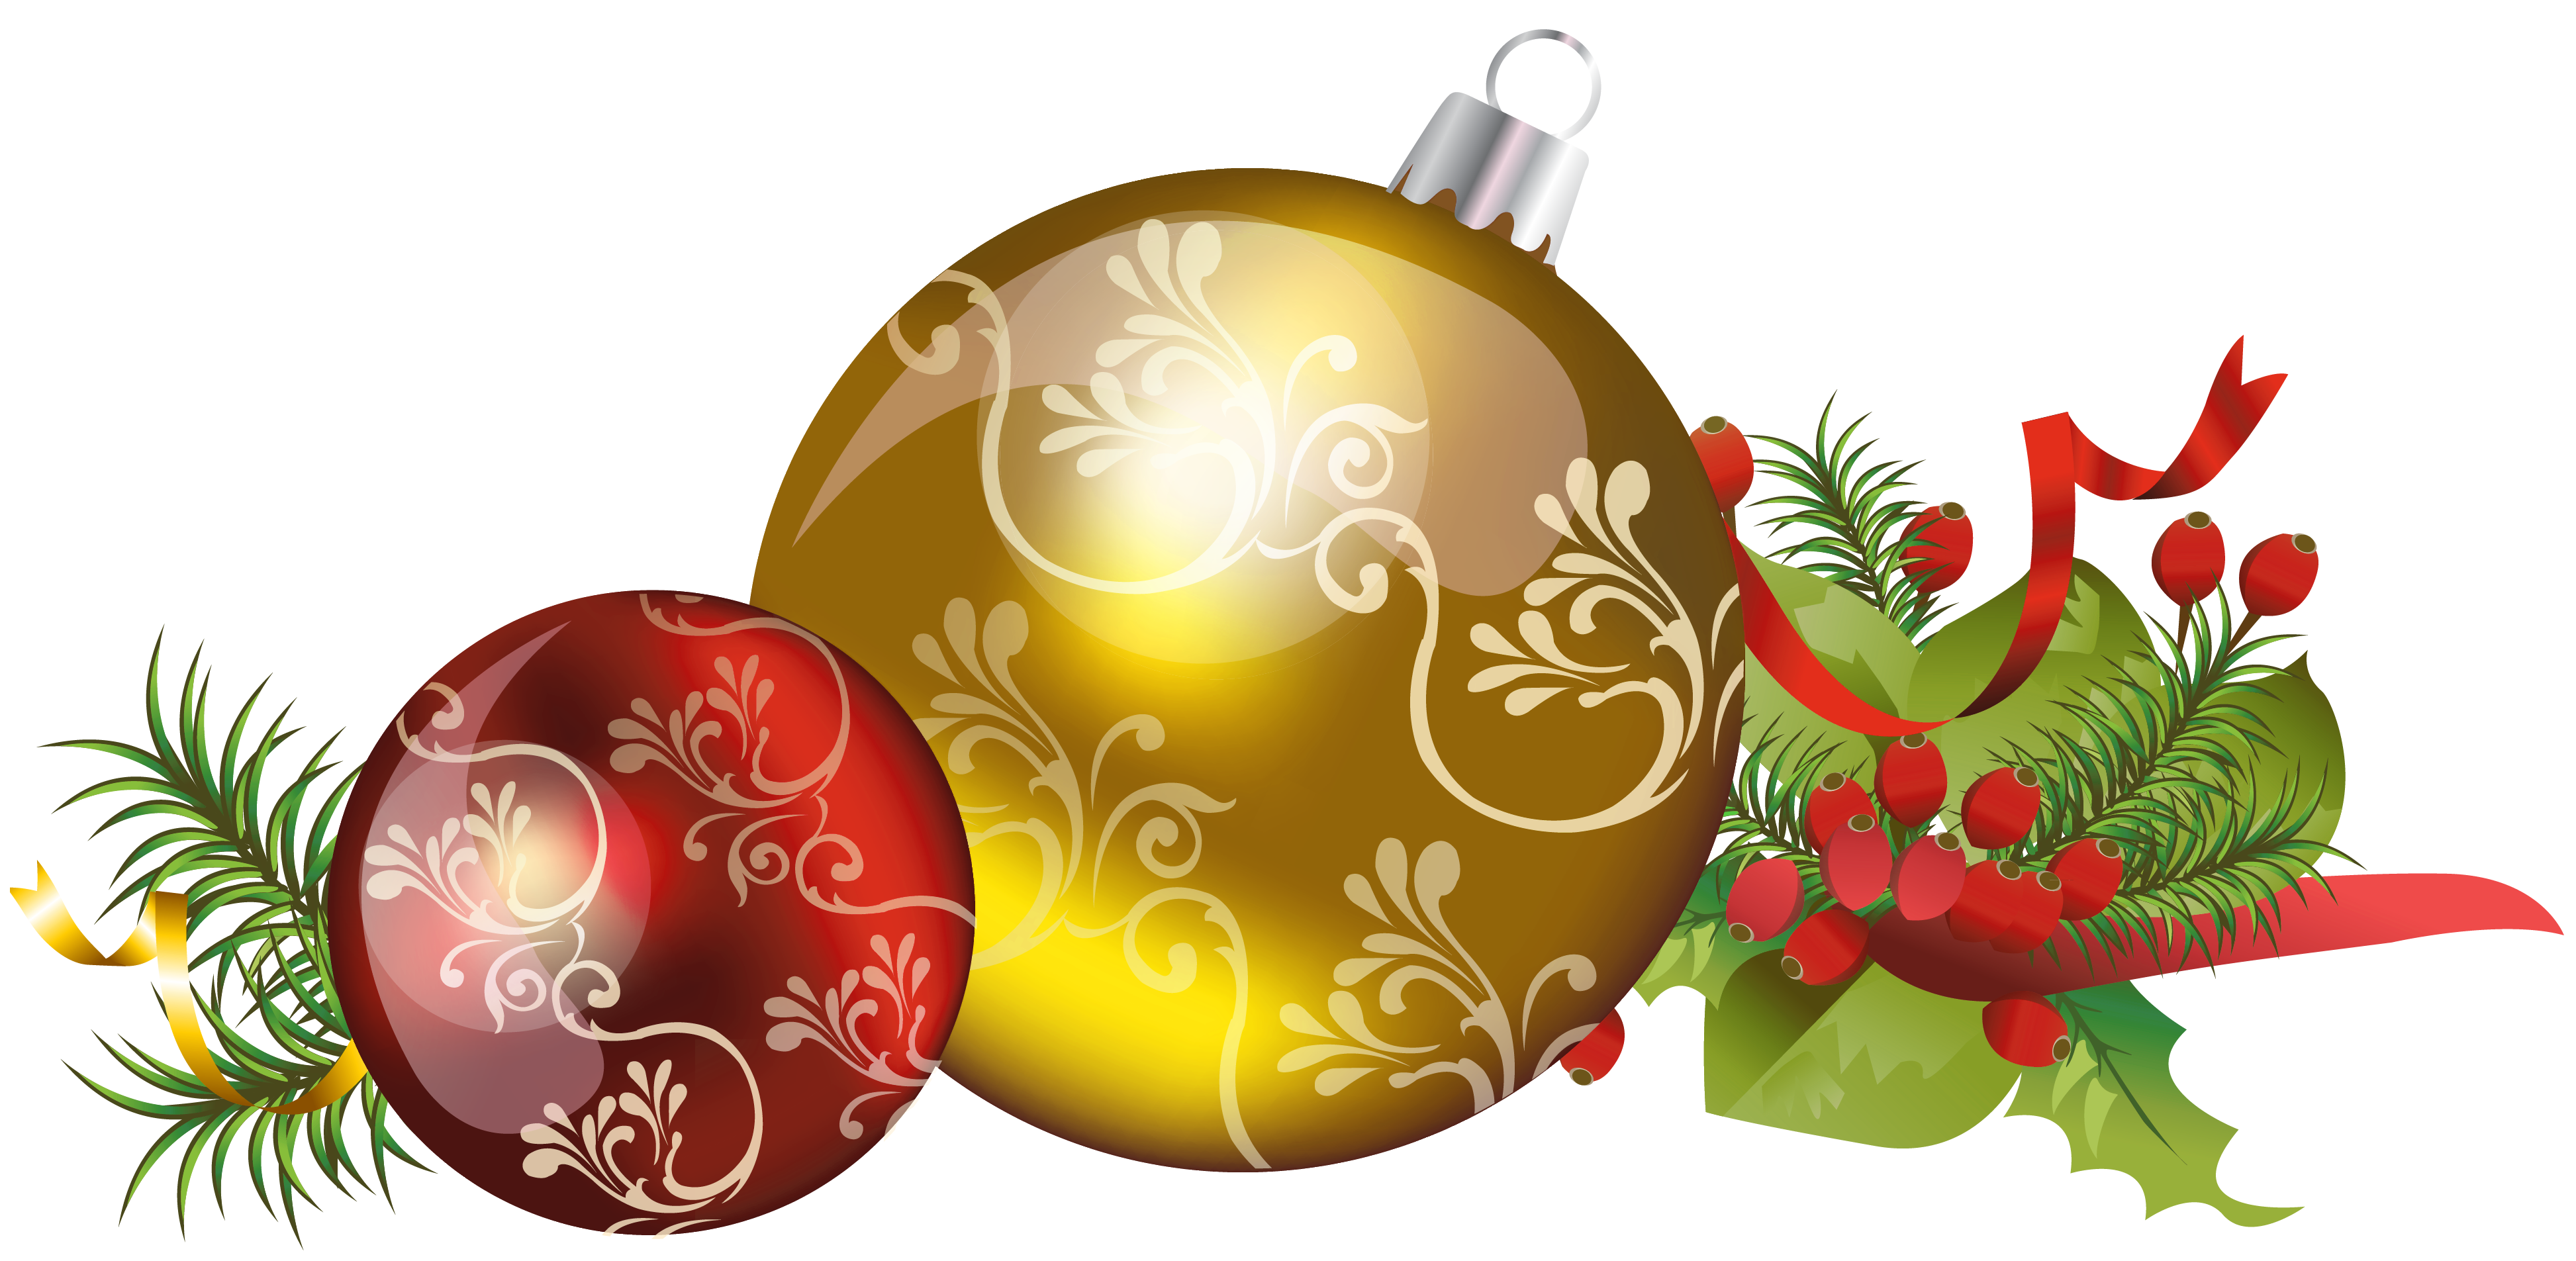 Christmas Ornaments Christmas 2015 ! - Christmas Ornament PNG